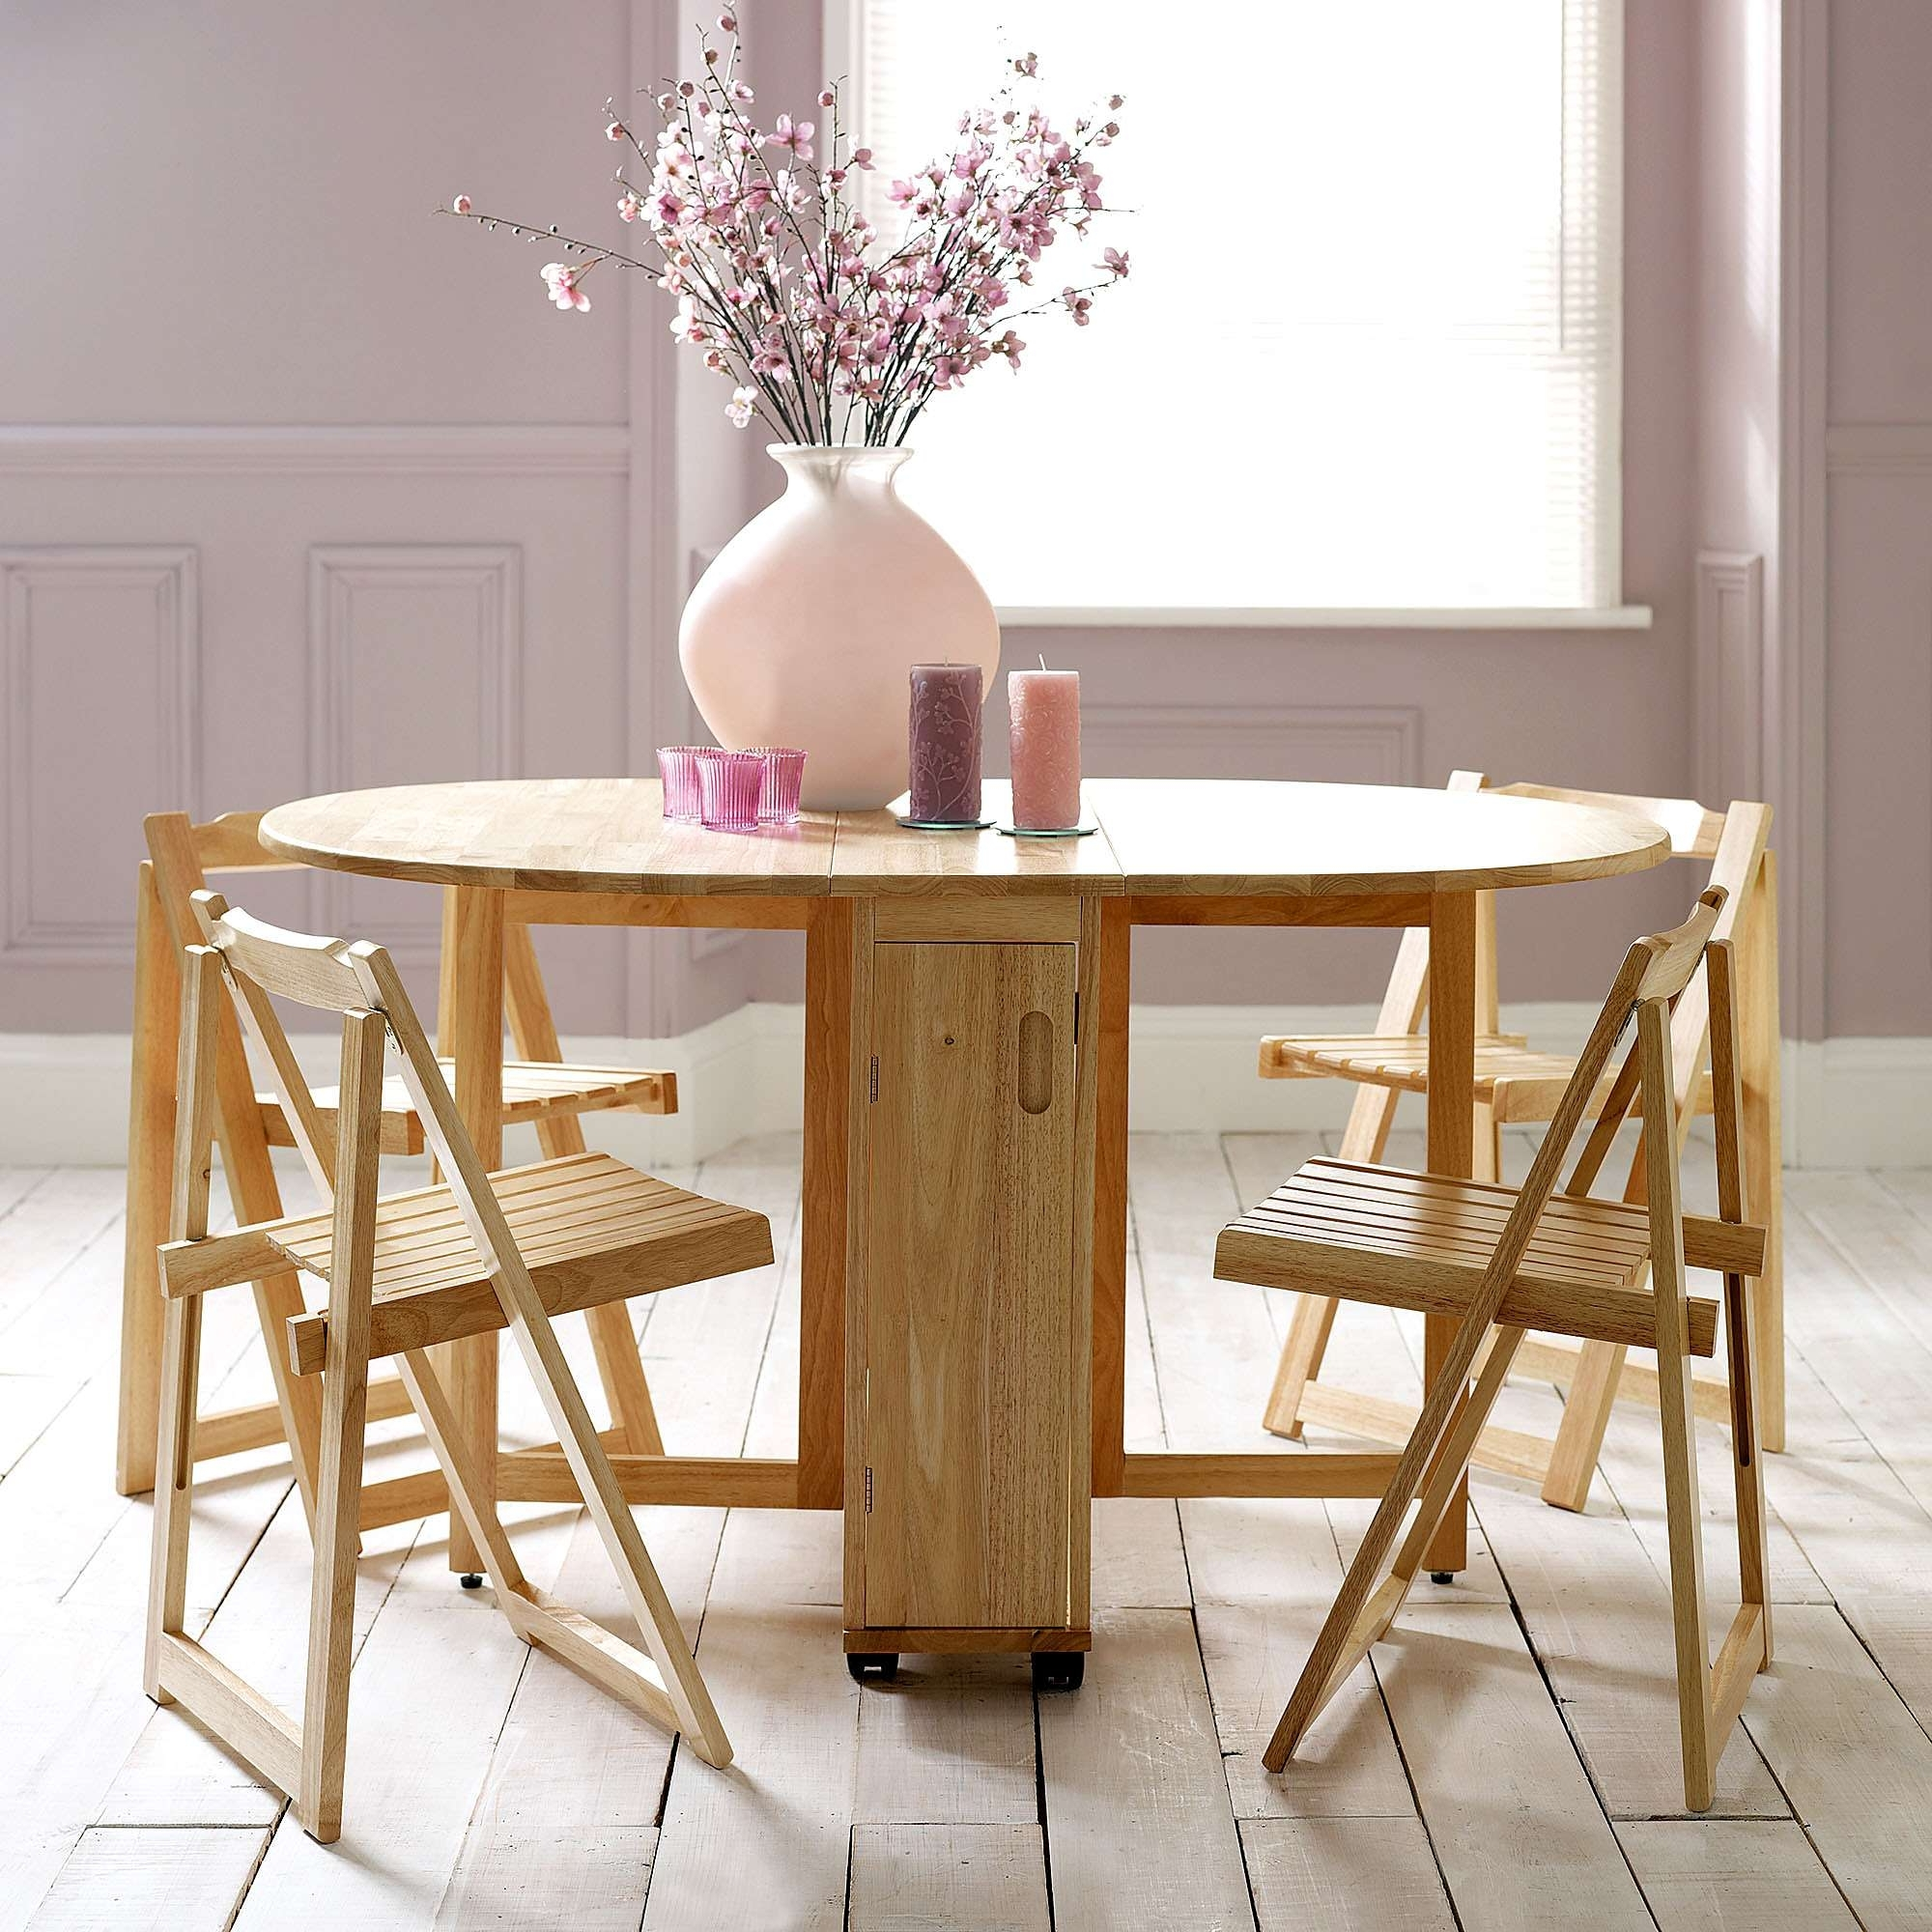 Trendy Scandinavian Dining Tables And Chairs Pertaining To Furniture (View 24 of 25)